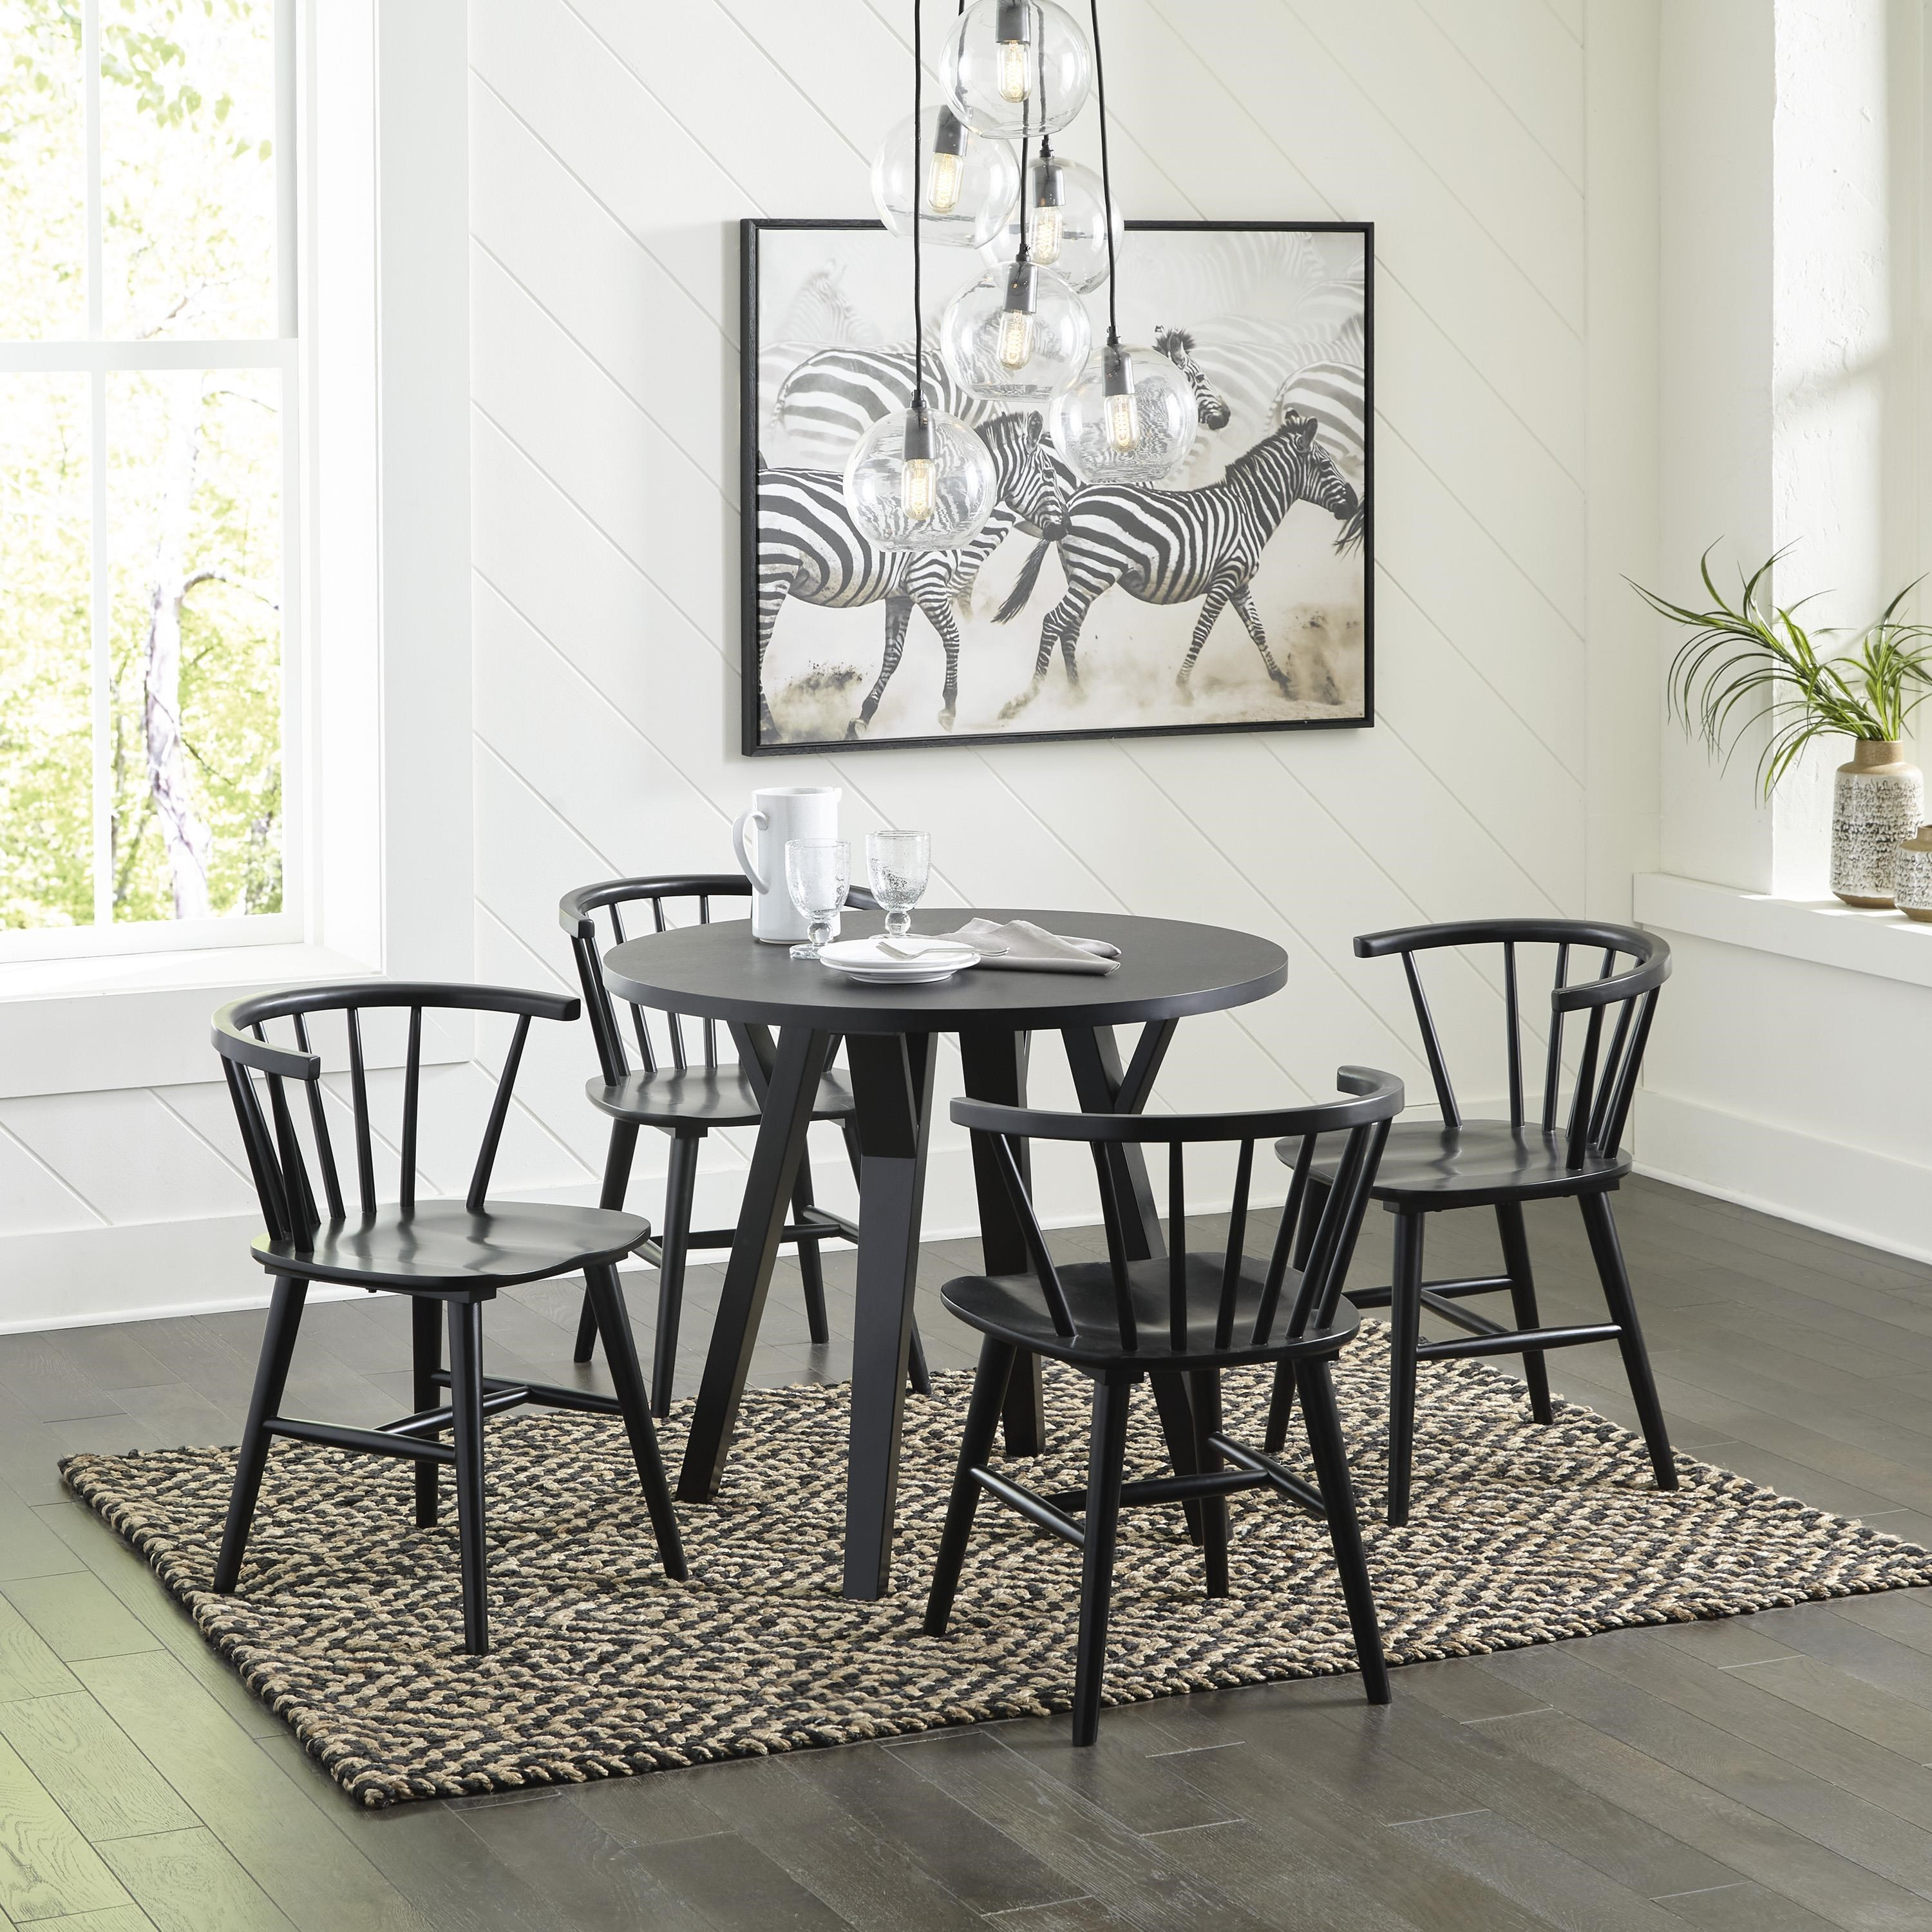 Otaska 5 Piece Dining Room Set by Signature Design by Ashley at Sam Levitz Outlet